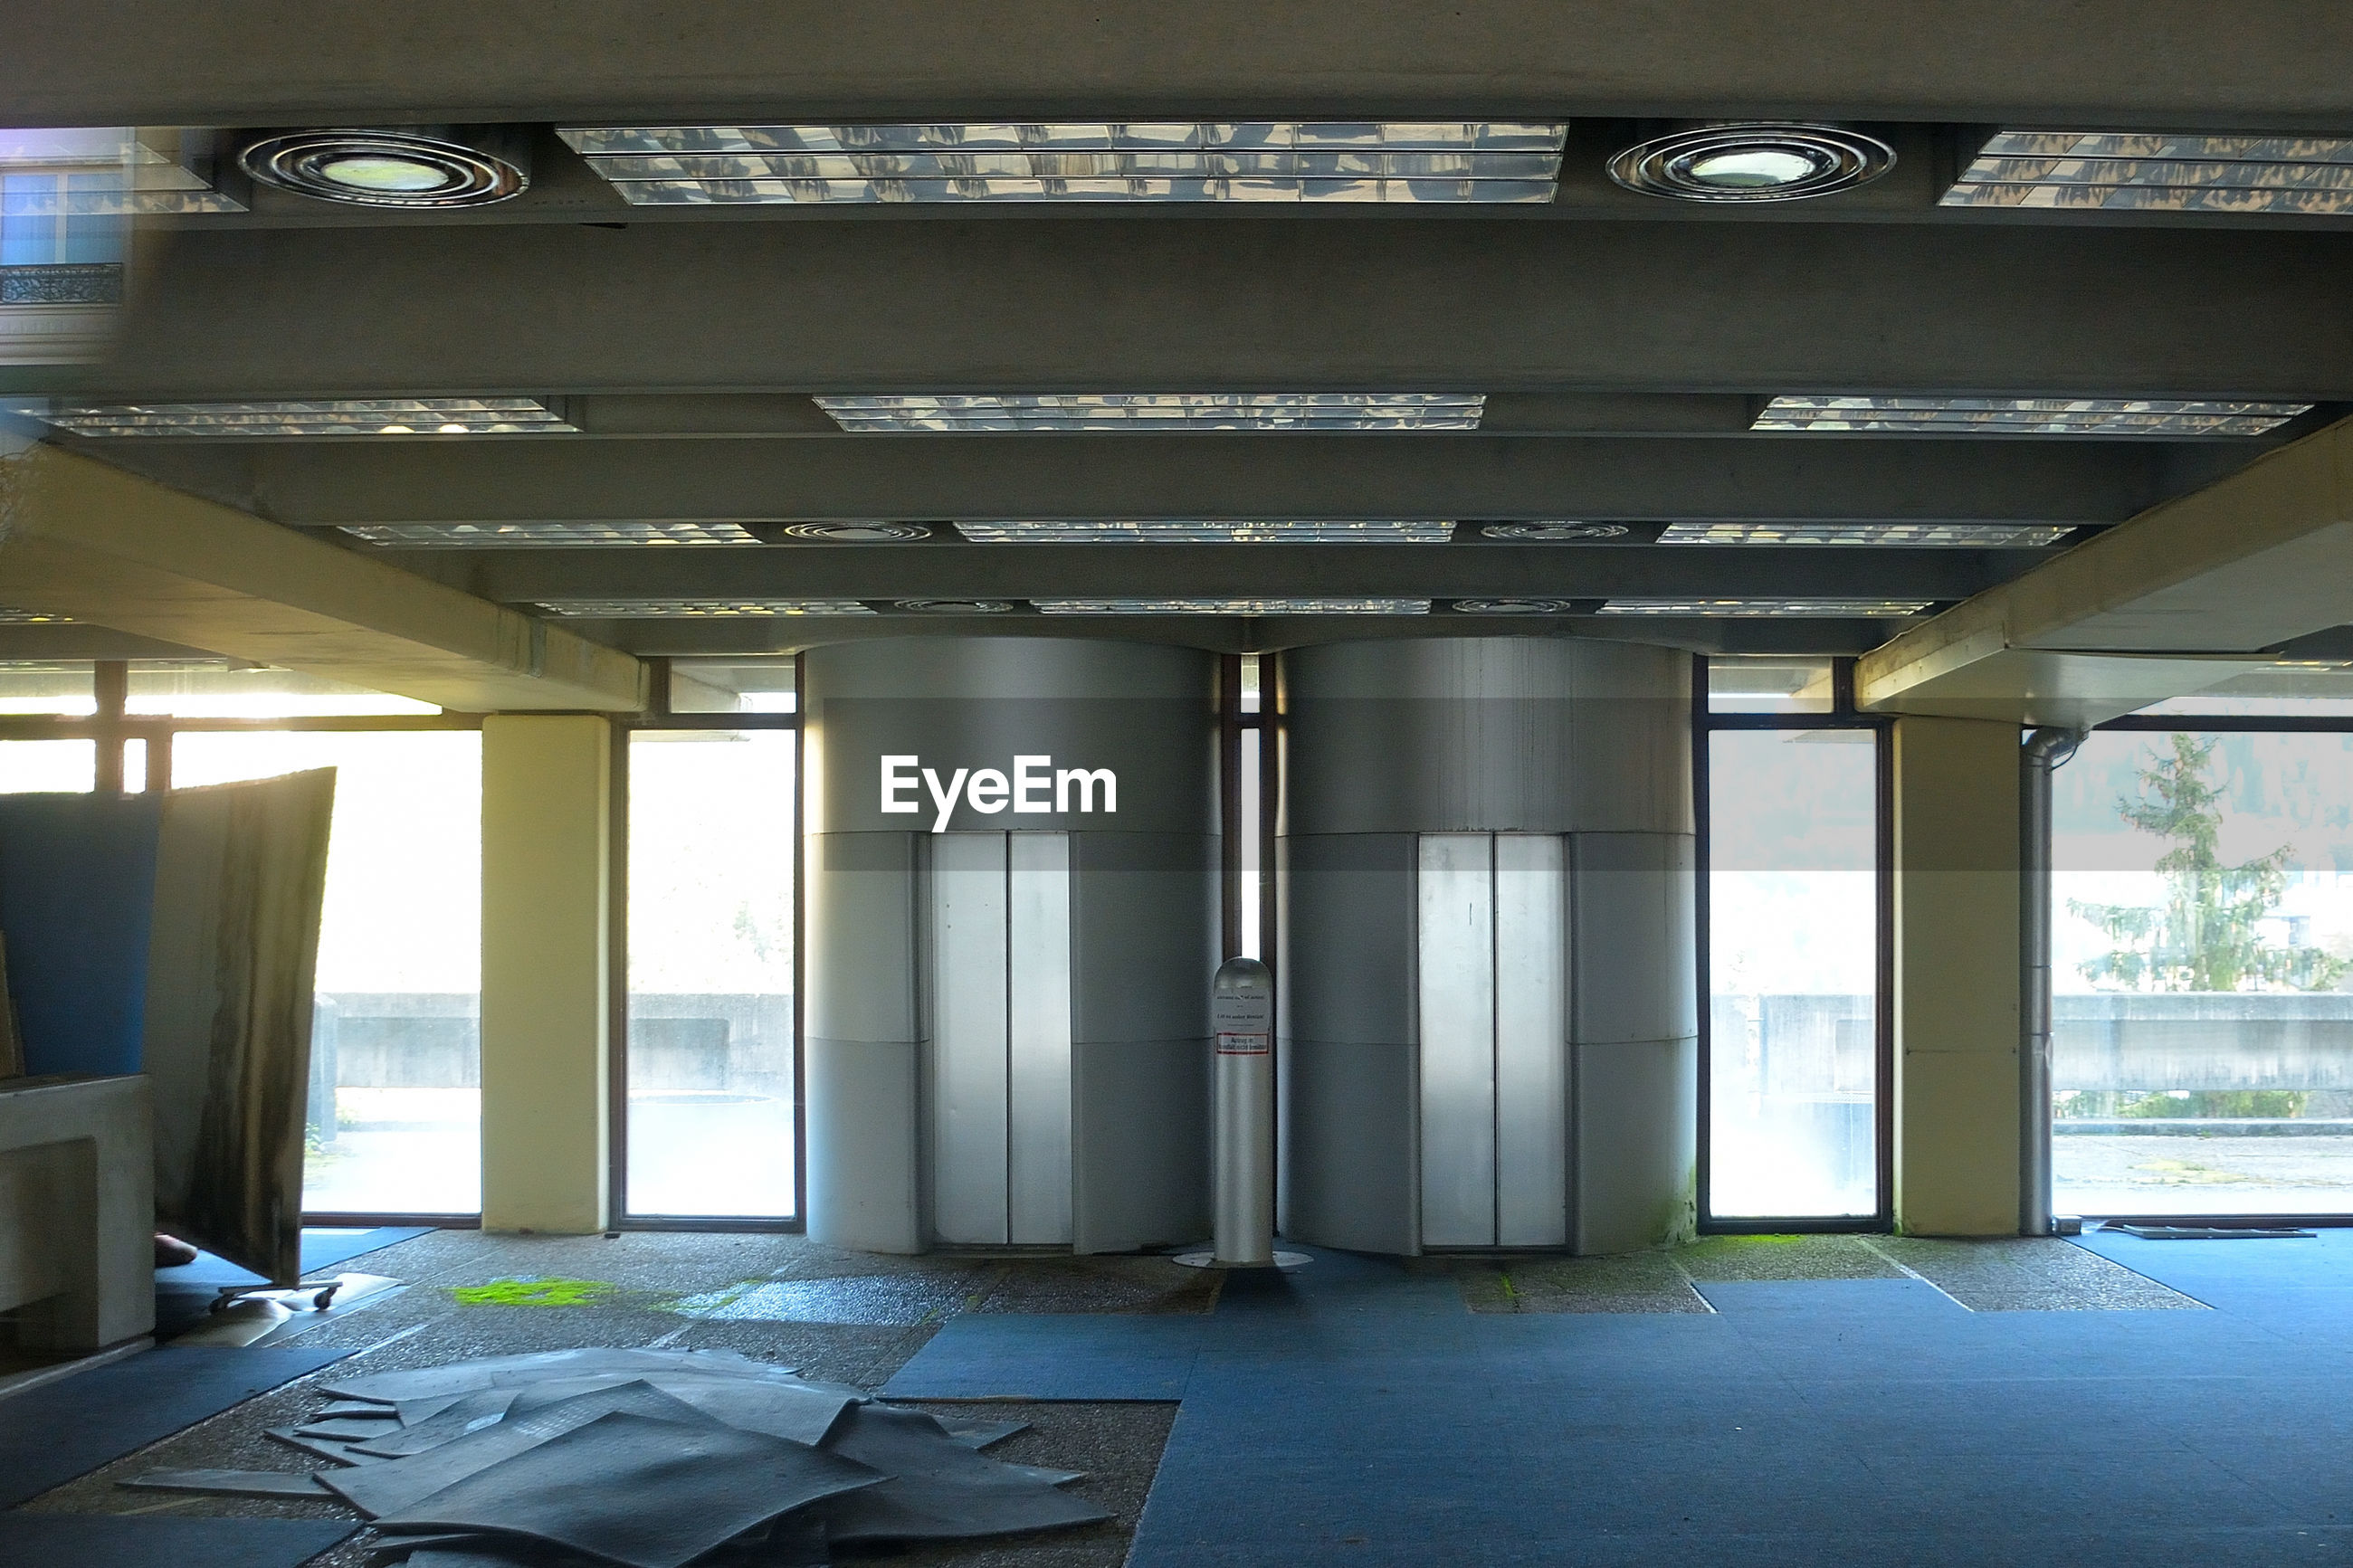 VIEW OF EMPTY ROOM WITH WINDOWS